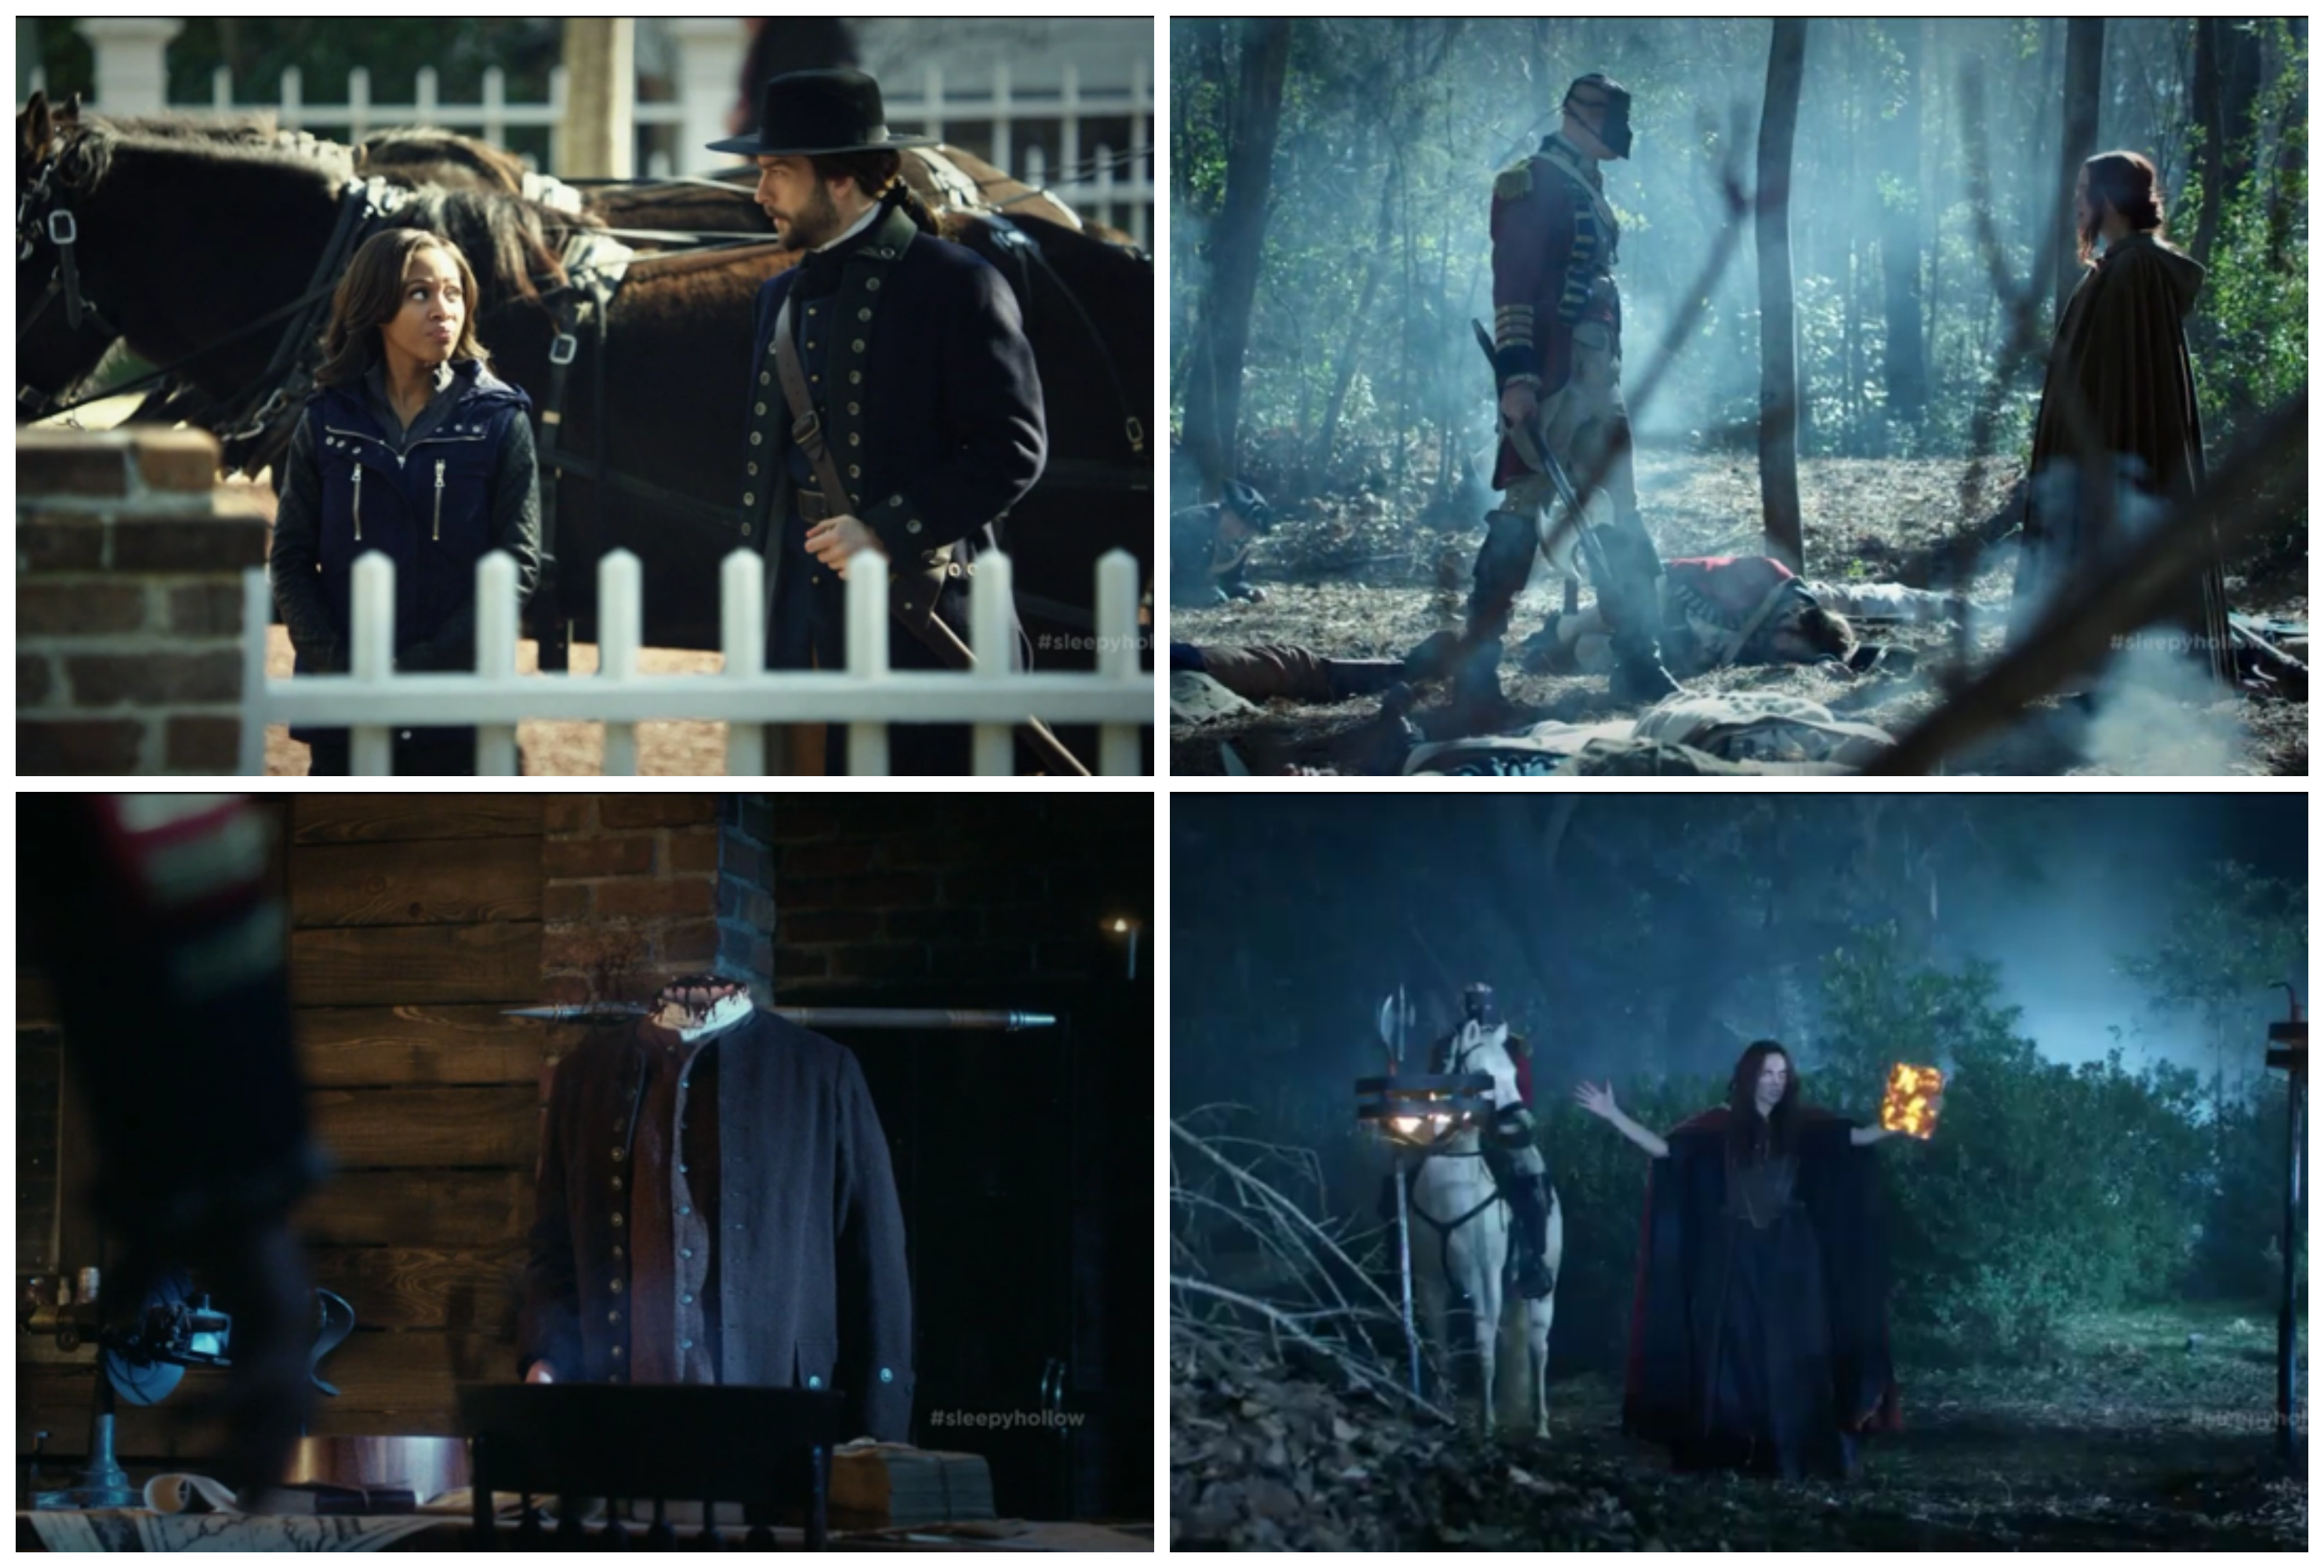 Episode 187: Sleepy Hollow - S2E18 - Tempus Fugit